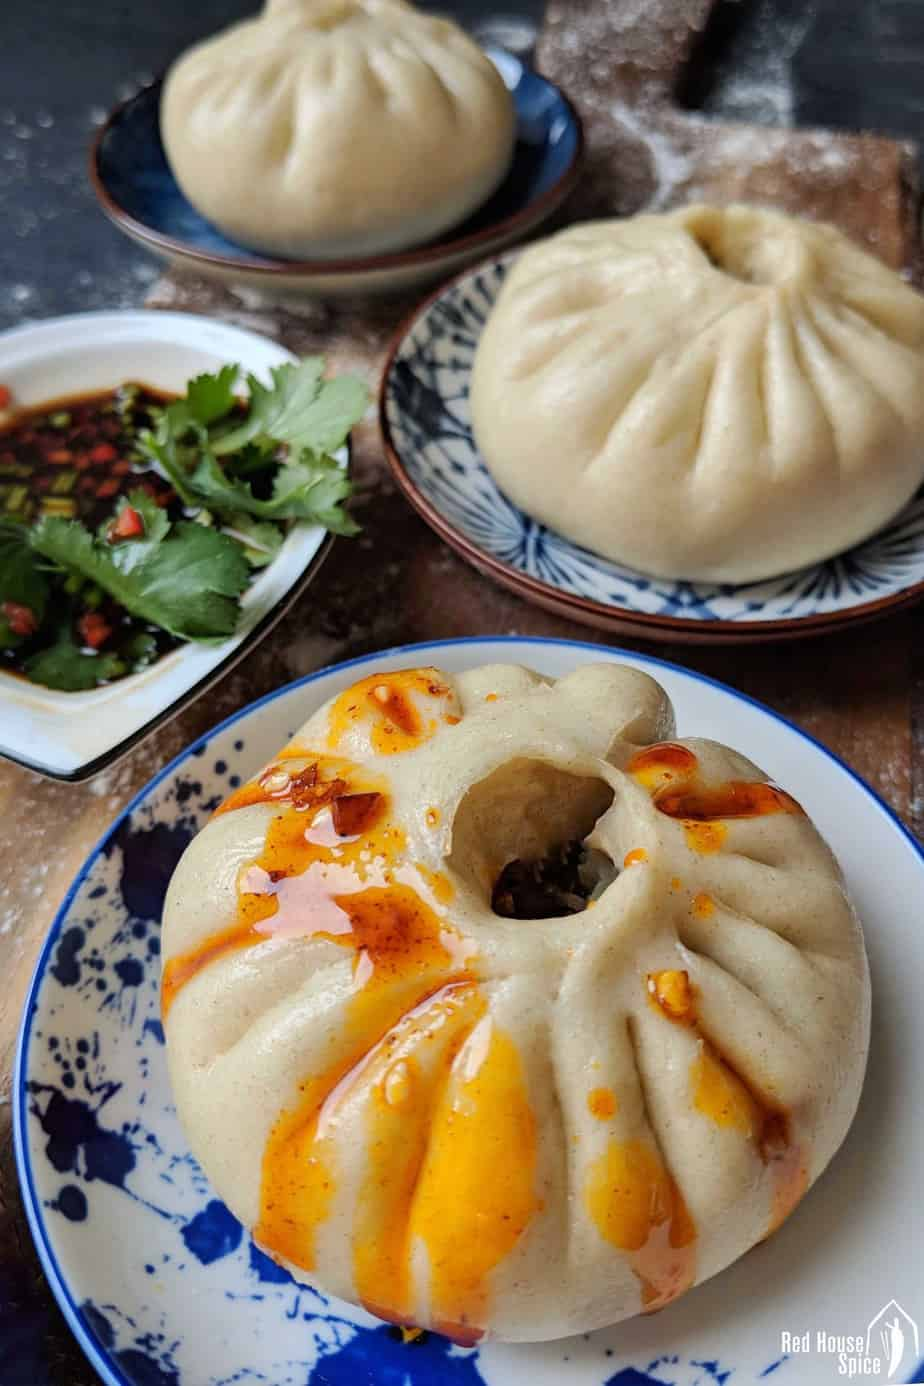 Steamed bao bun dressed with chilli oil.